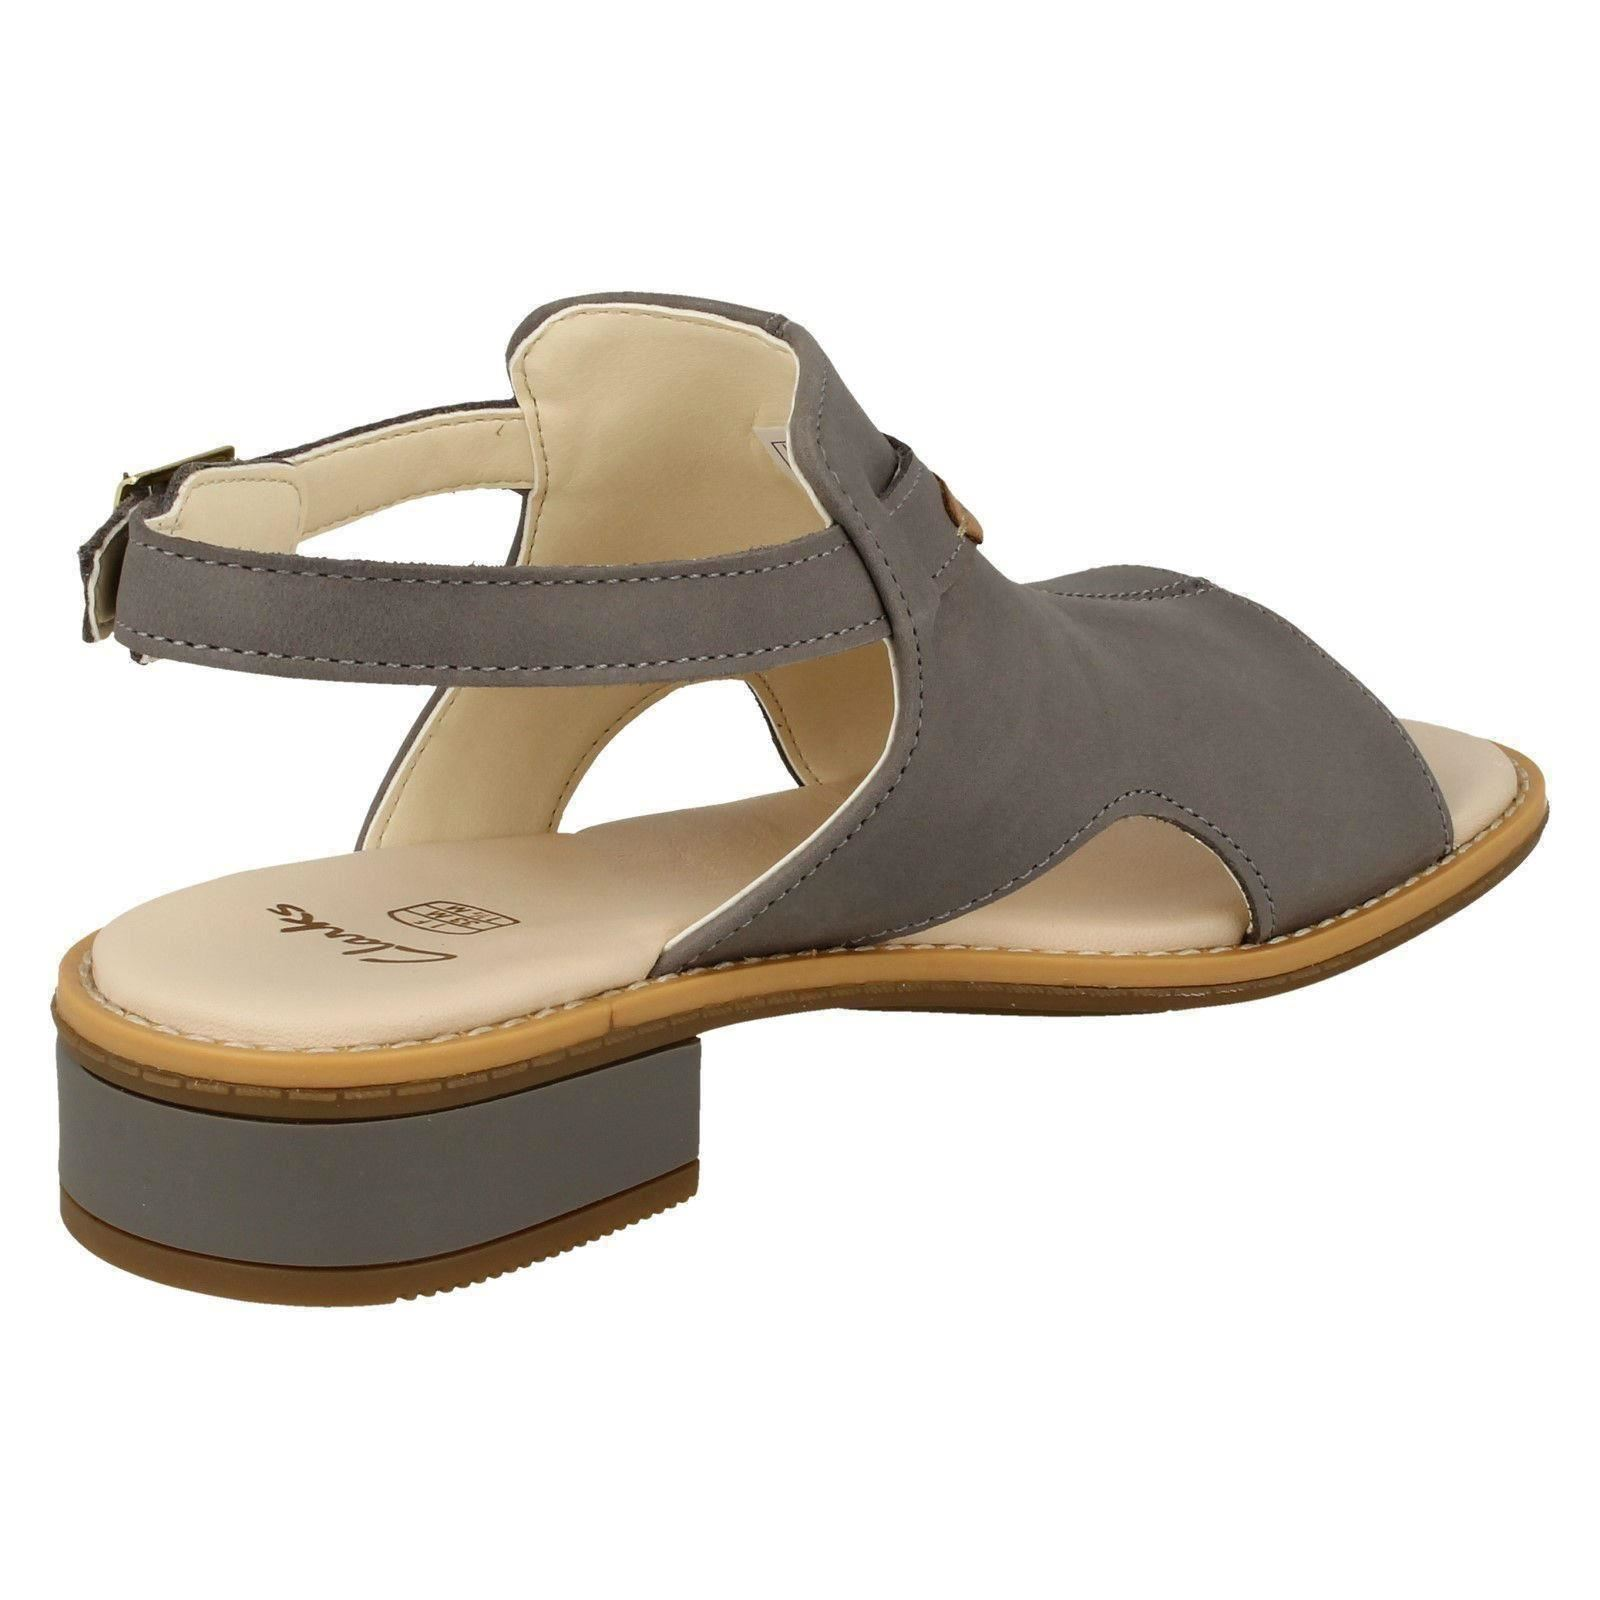 57067207cfc6 Girls-Clarks-Low-Heel-Slingback-Sandals-Darcy-Lily thumbnail